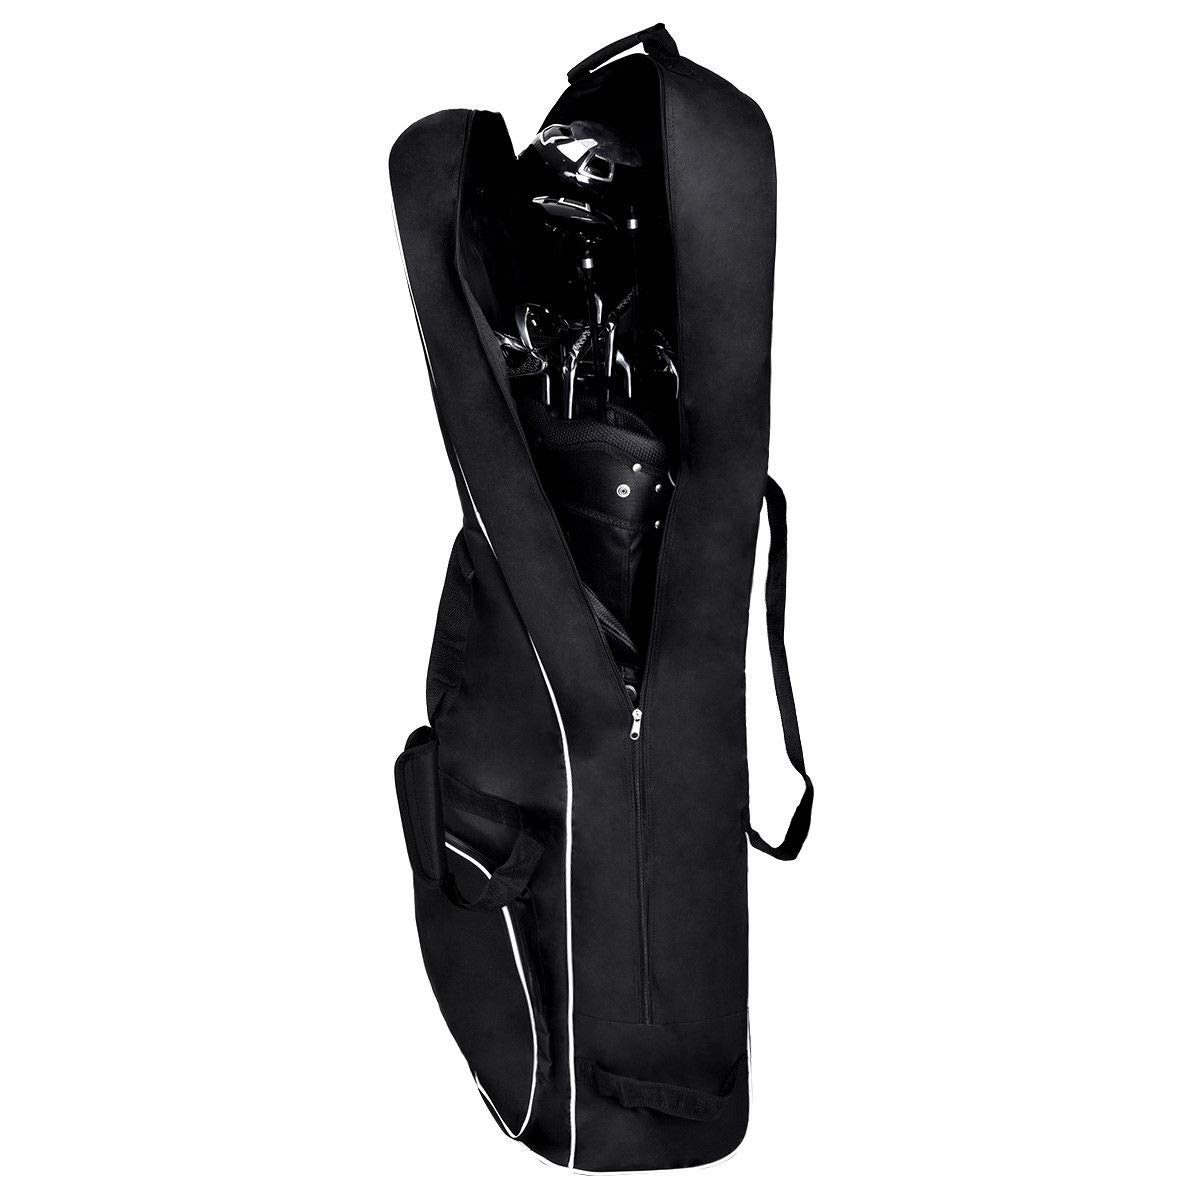 Tangkula Foldable Golf Stand Bag Travel Cover Portable Golf Travel Bag with Wheel Lightweight Oxford Cloth Golf Padded Travel Cover Golf Carry Bag,Black